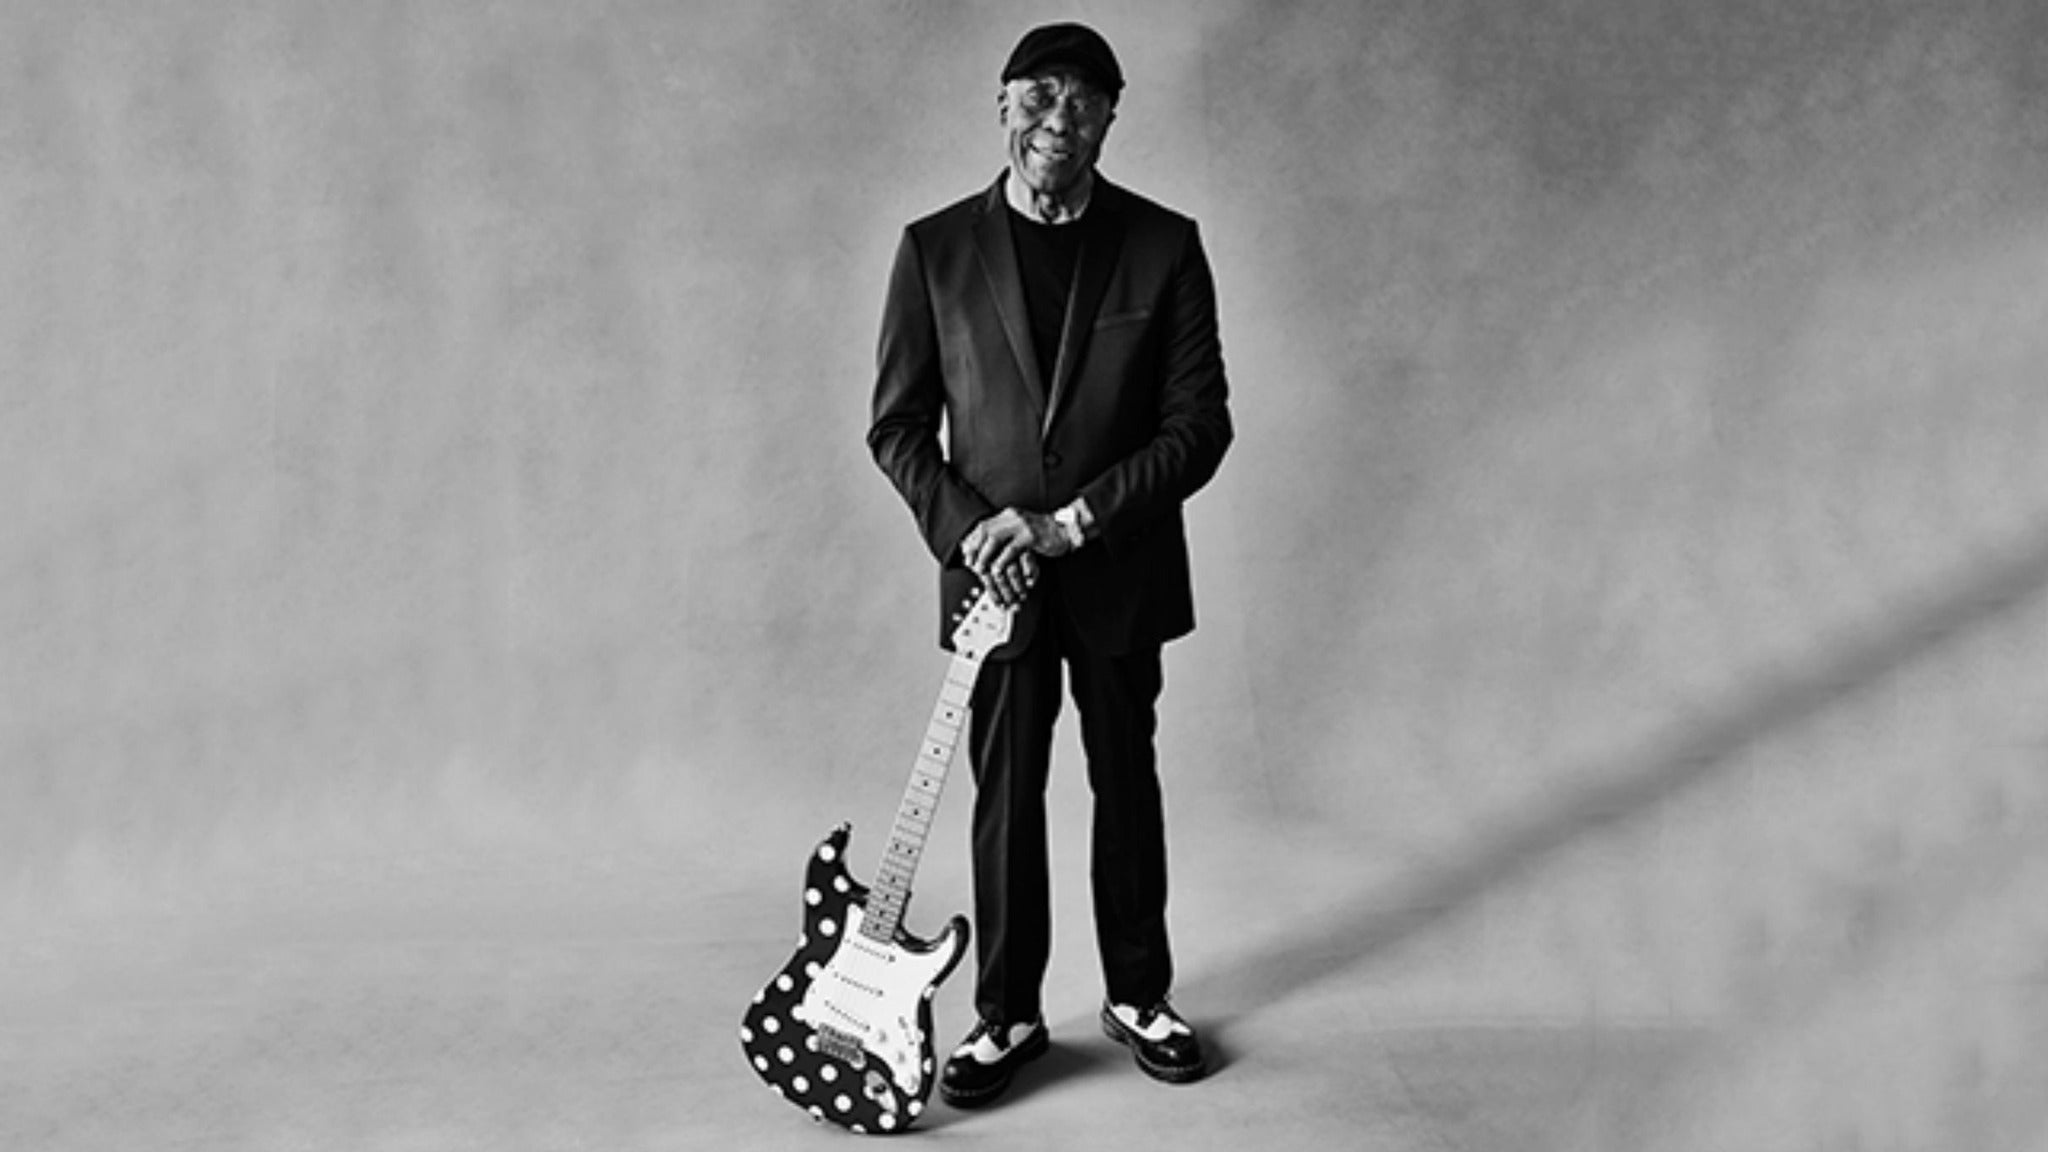 Buddy Guy at Ruth Eckerd Hall